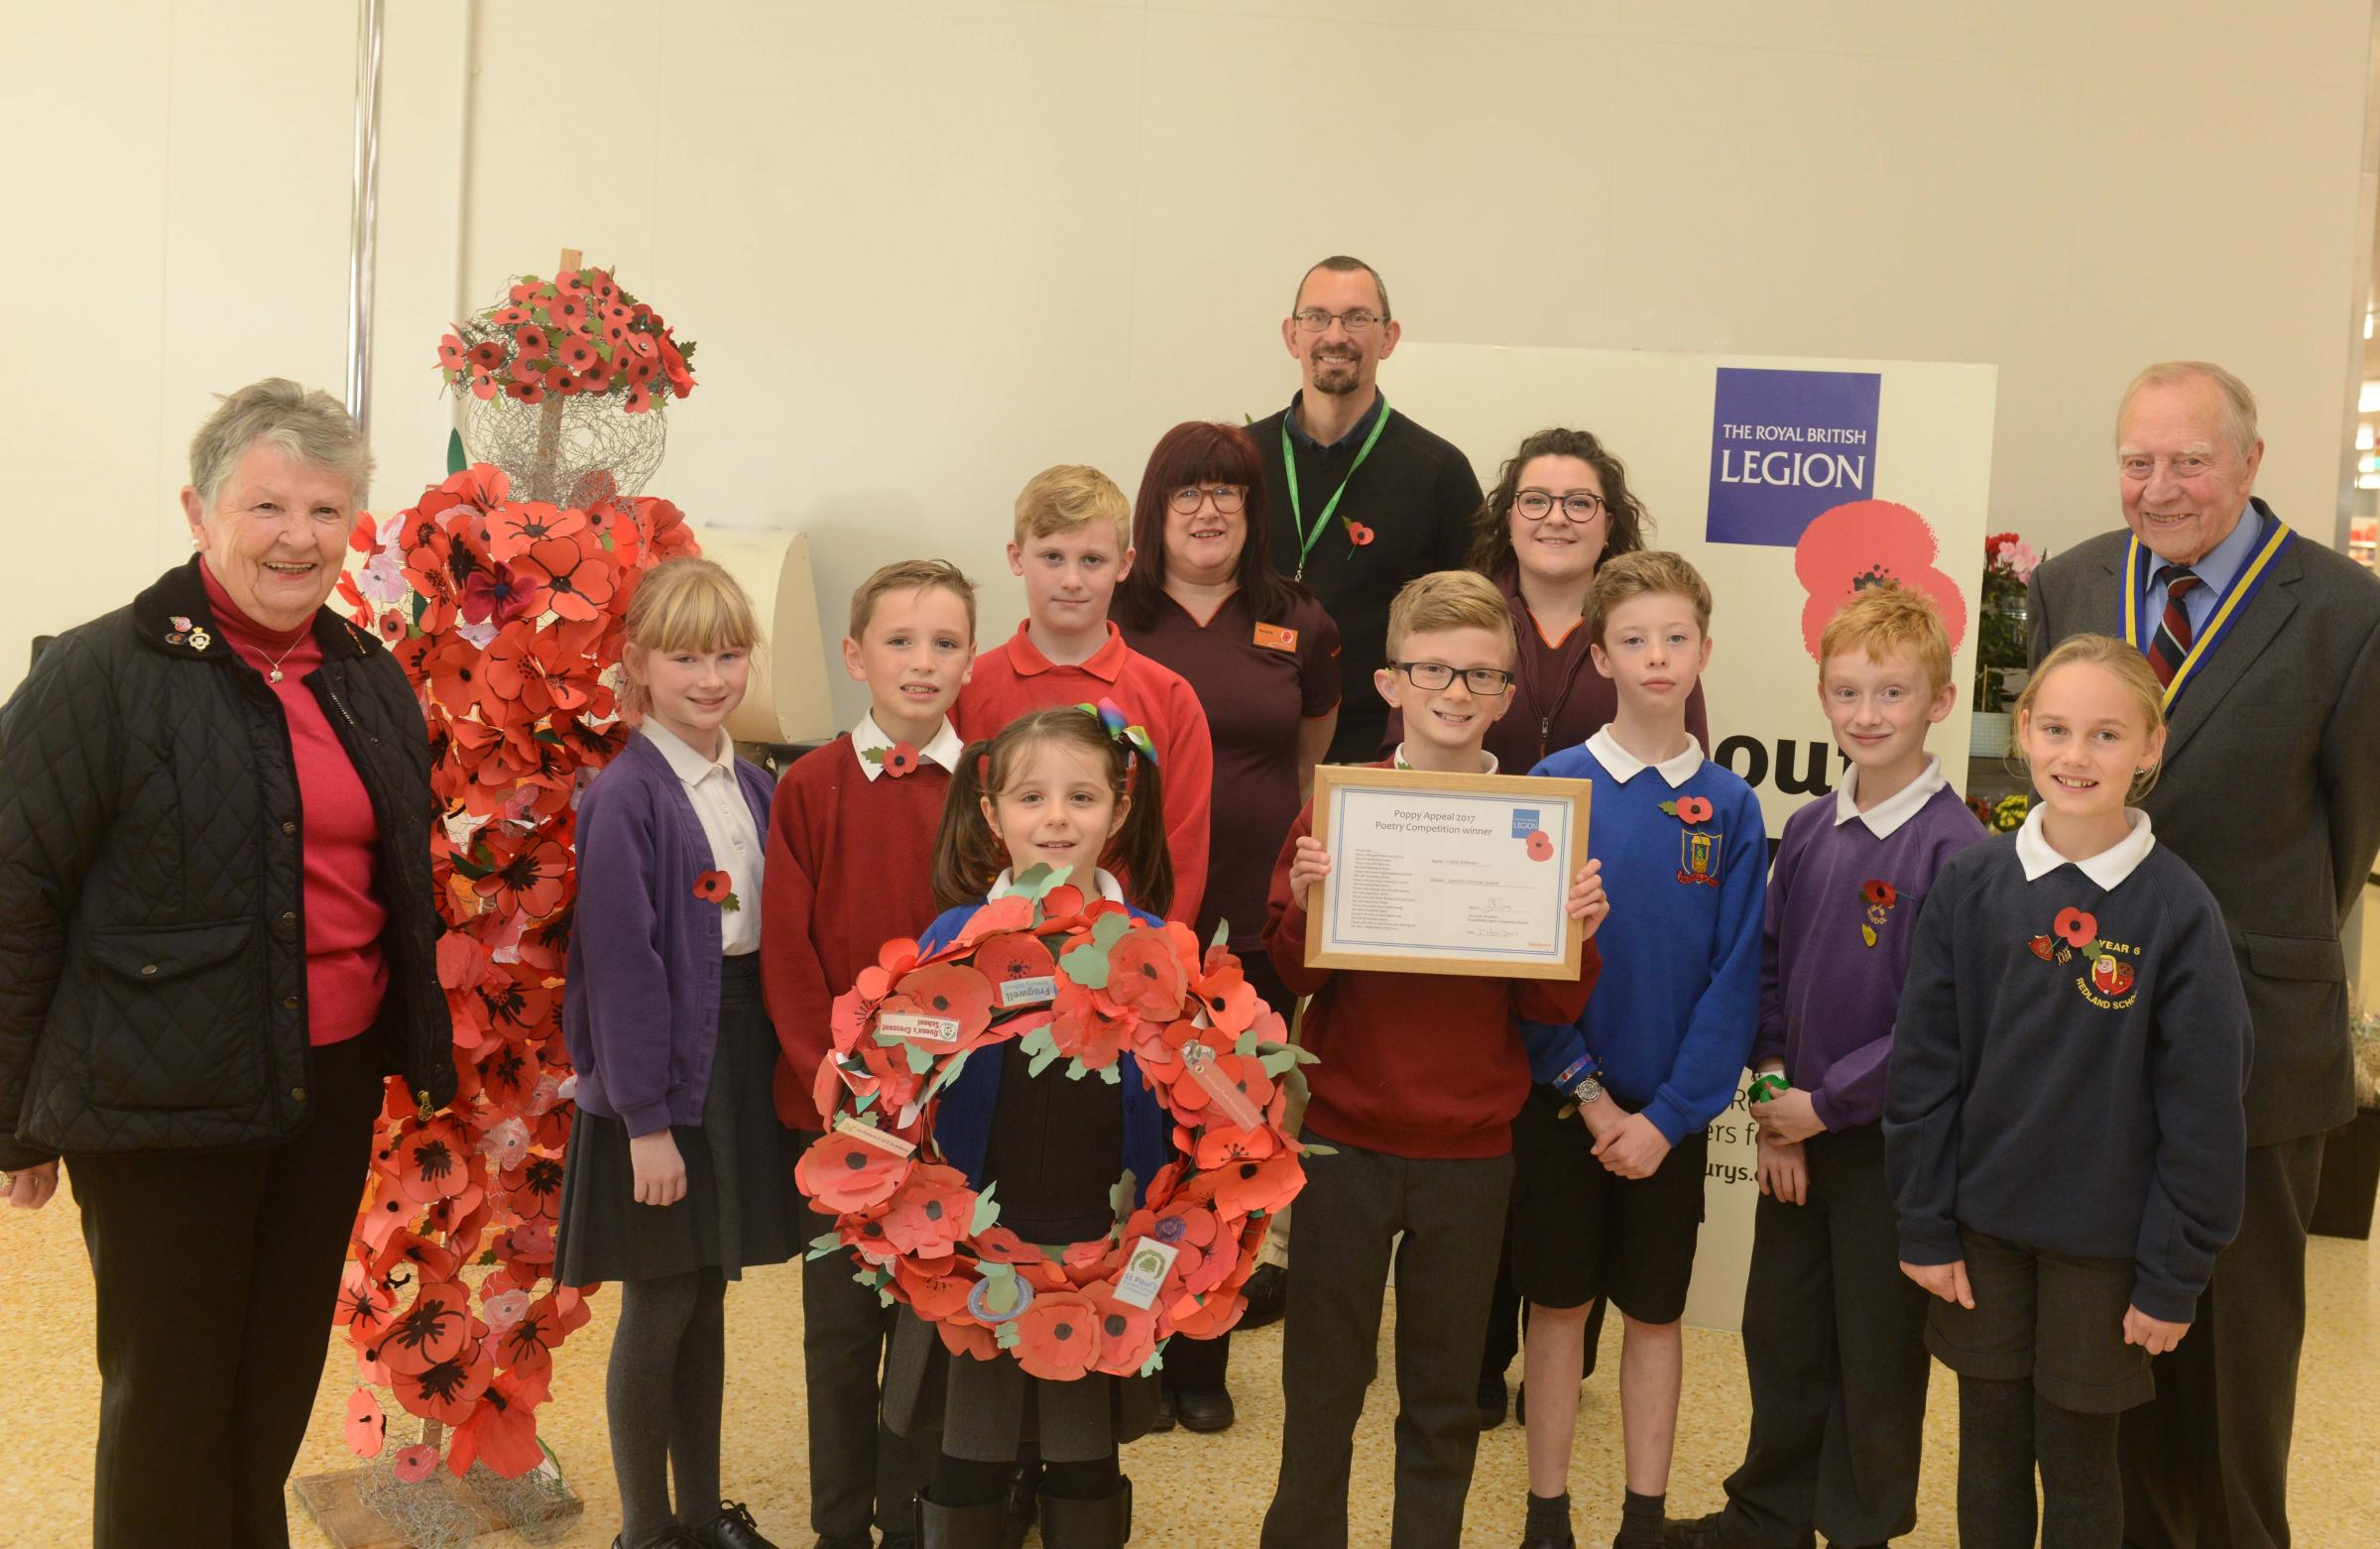 Calan Gilmour (front centre), winner of Remembrance Sunday poetry competition with adults l-r Irene Sinclair, Michelle Perry, Andrew Skelton, Rochelle Oliver and Jim Scott. Photo: Siobhan Boyle SMB2210/1.